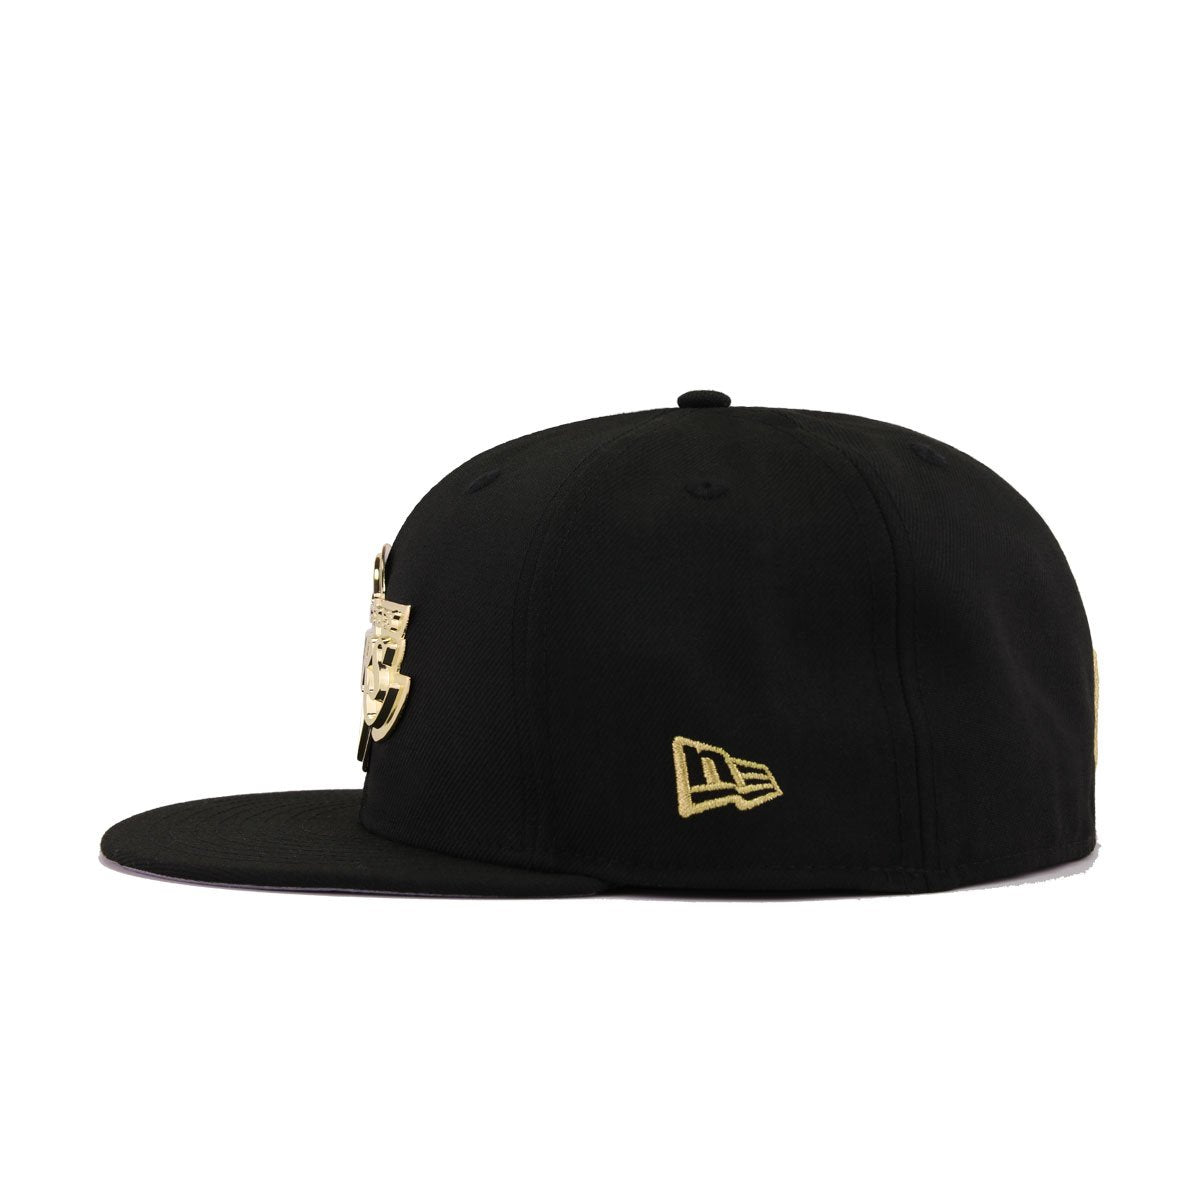 Los Angeles Lakers Black Gold Metal Badge New Era 59fifty Fitted Hat Heaven